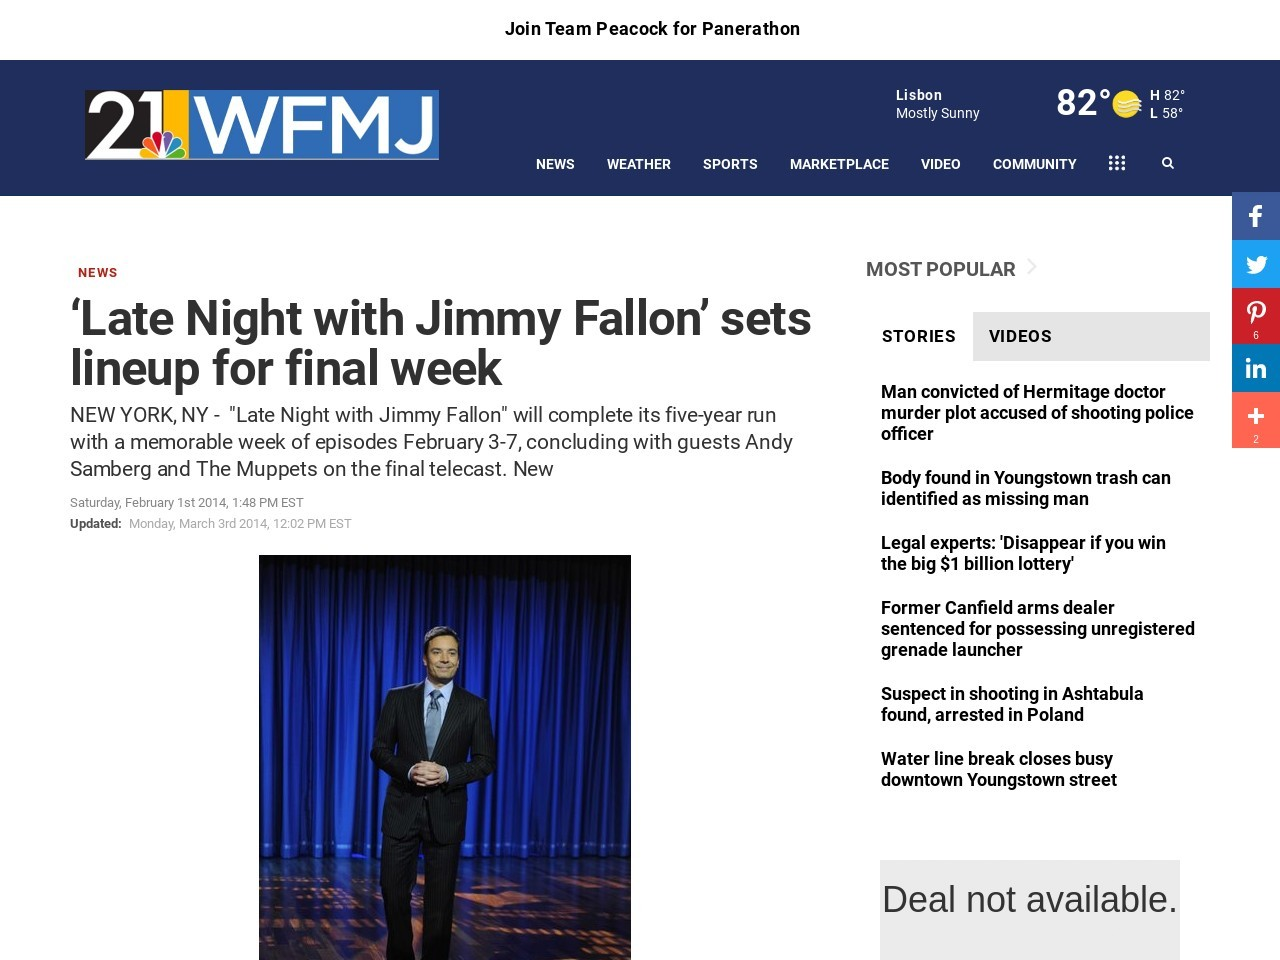 'Late Night with Jimmy Fallon' sets lineup for final week